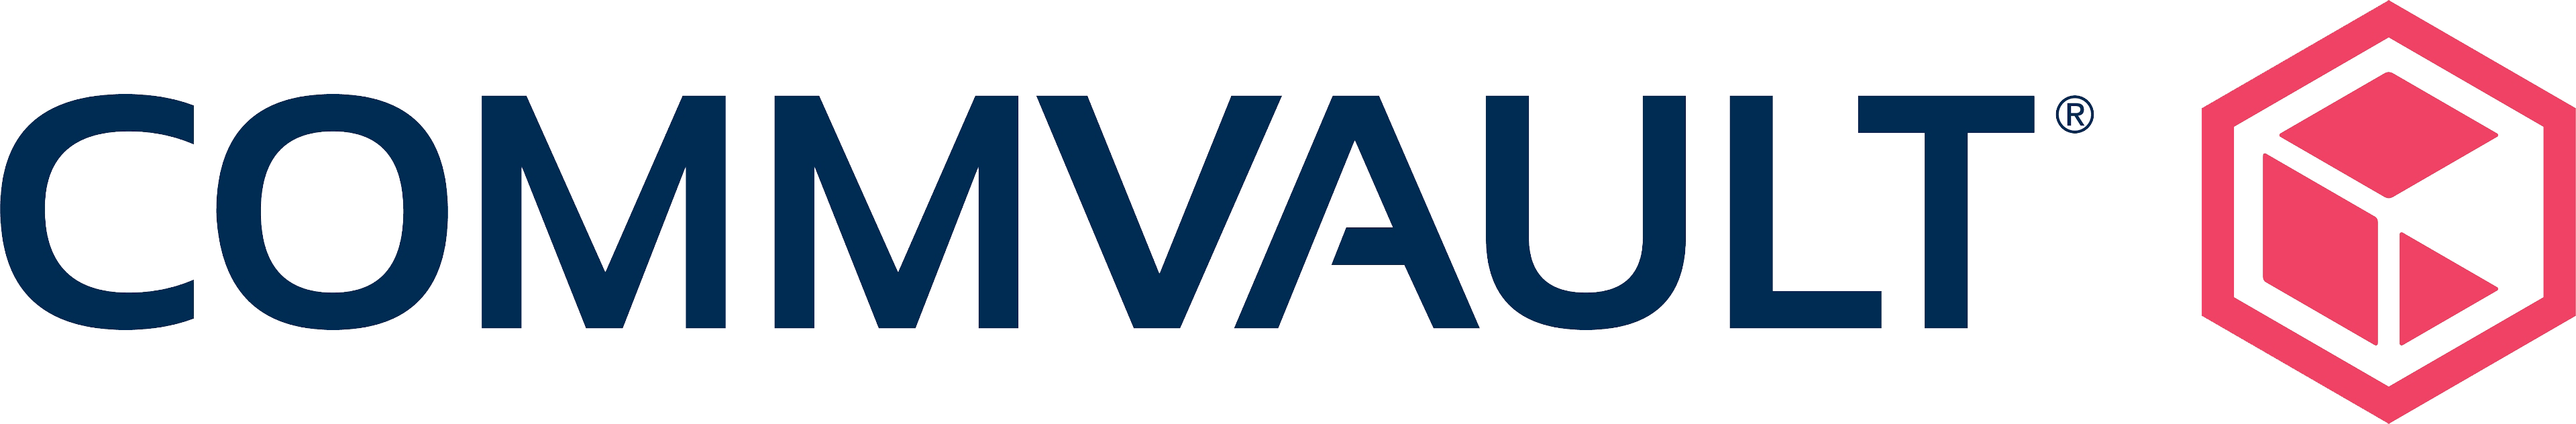 Commvault Backup and Recovery logo